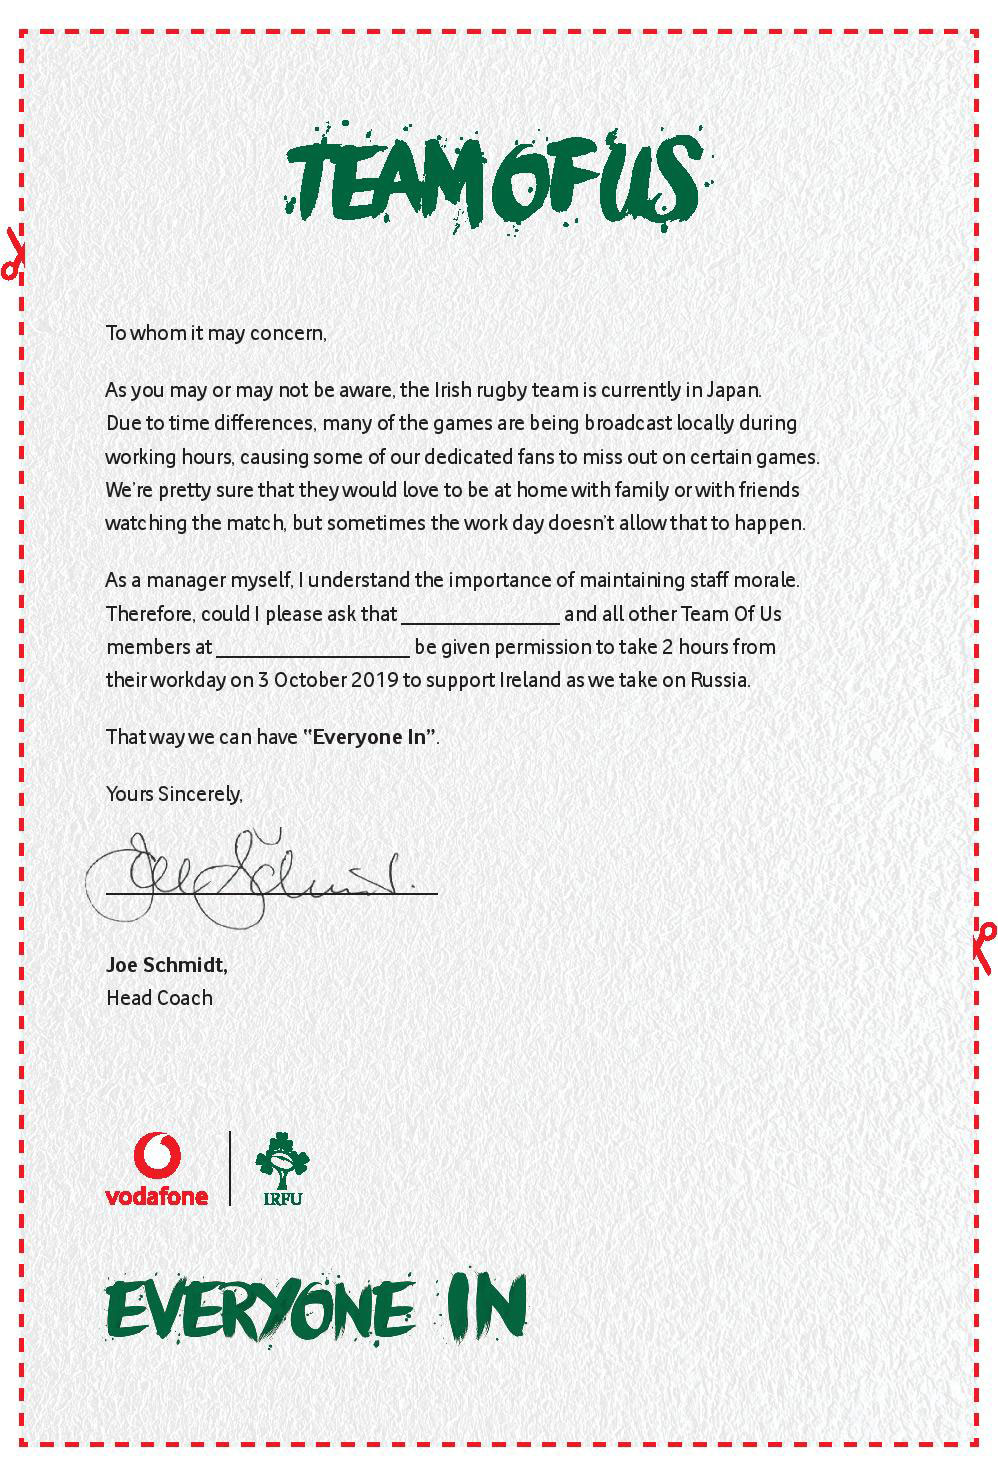 JWT Folk creates innovative print advert granting the nation permission to take time off to watch Ireland v Russia